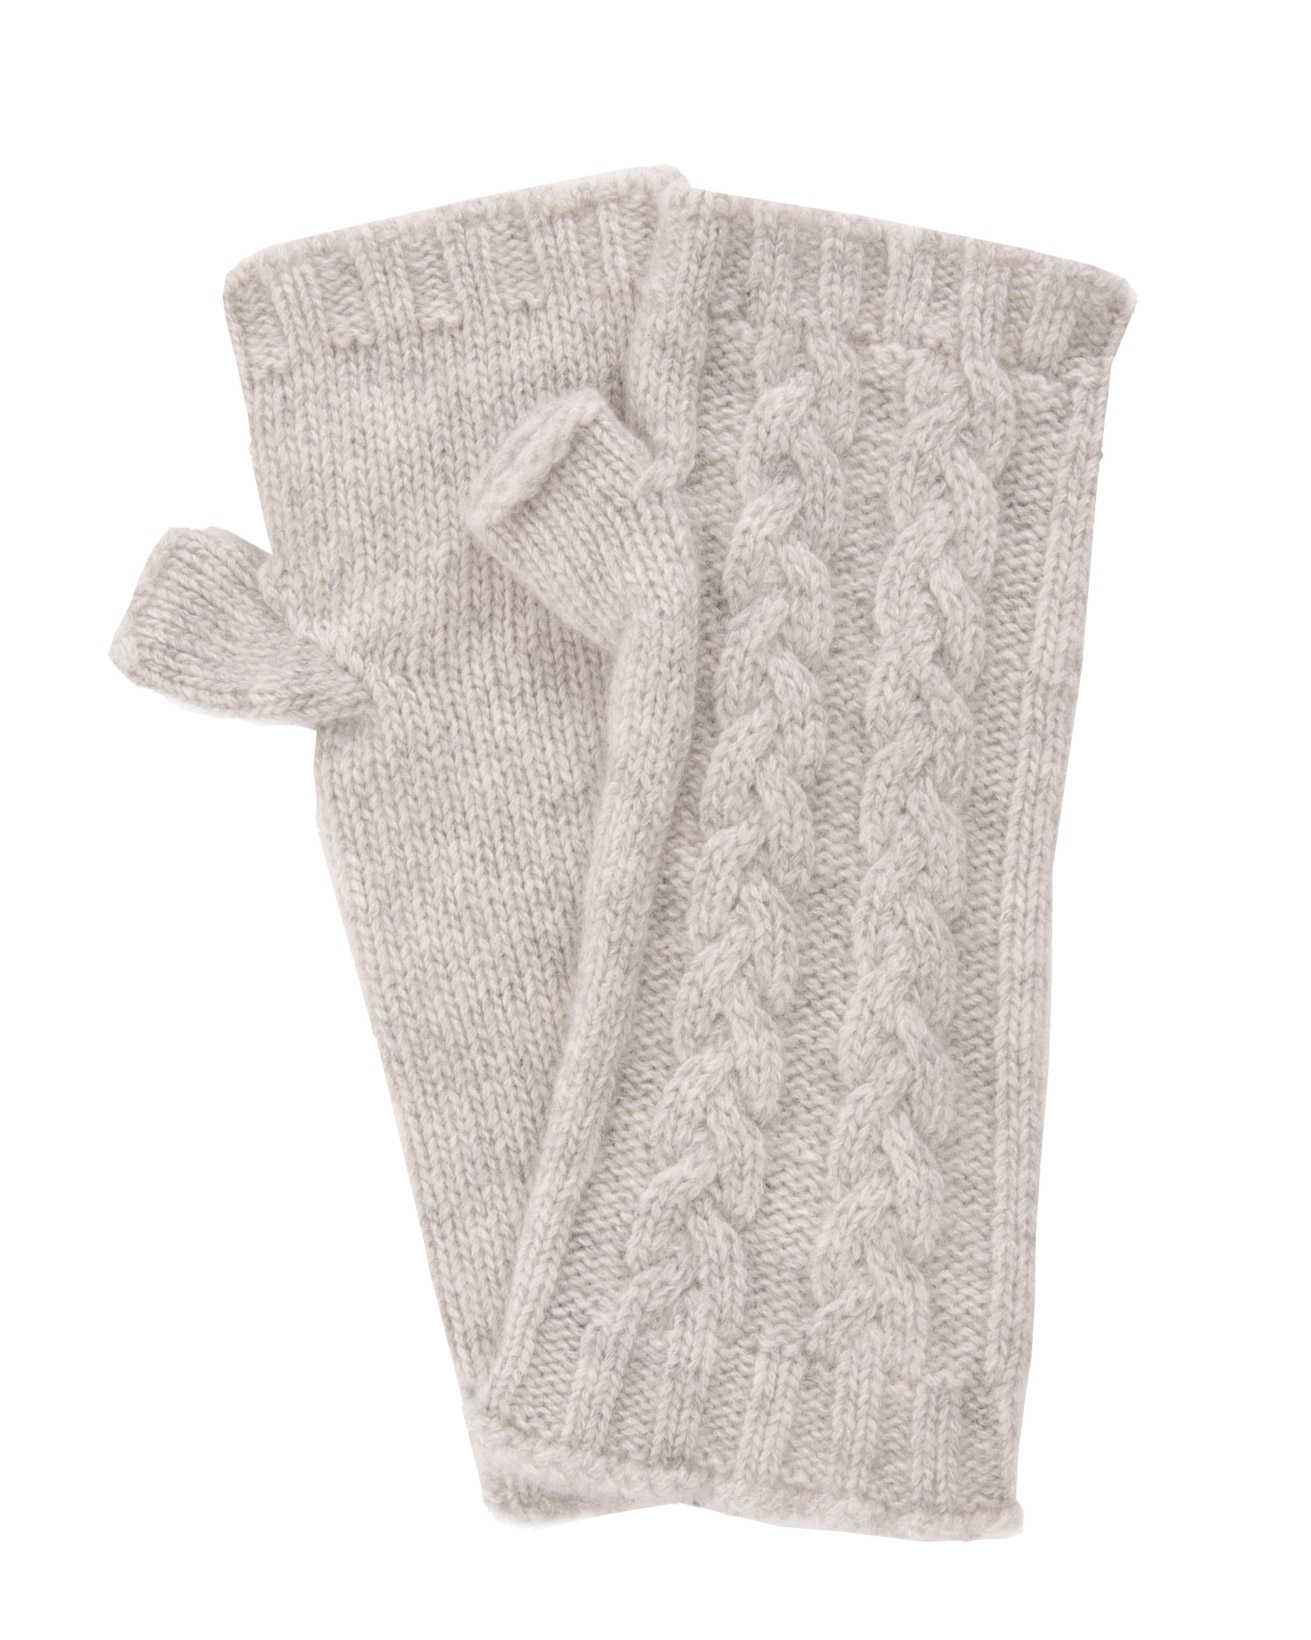 7530-statement wristwarmers-dove grey gloves.jpg